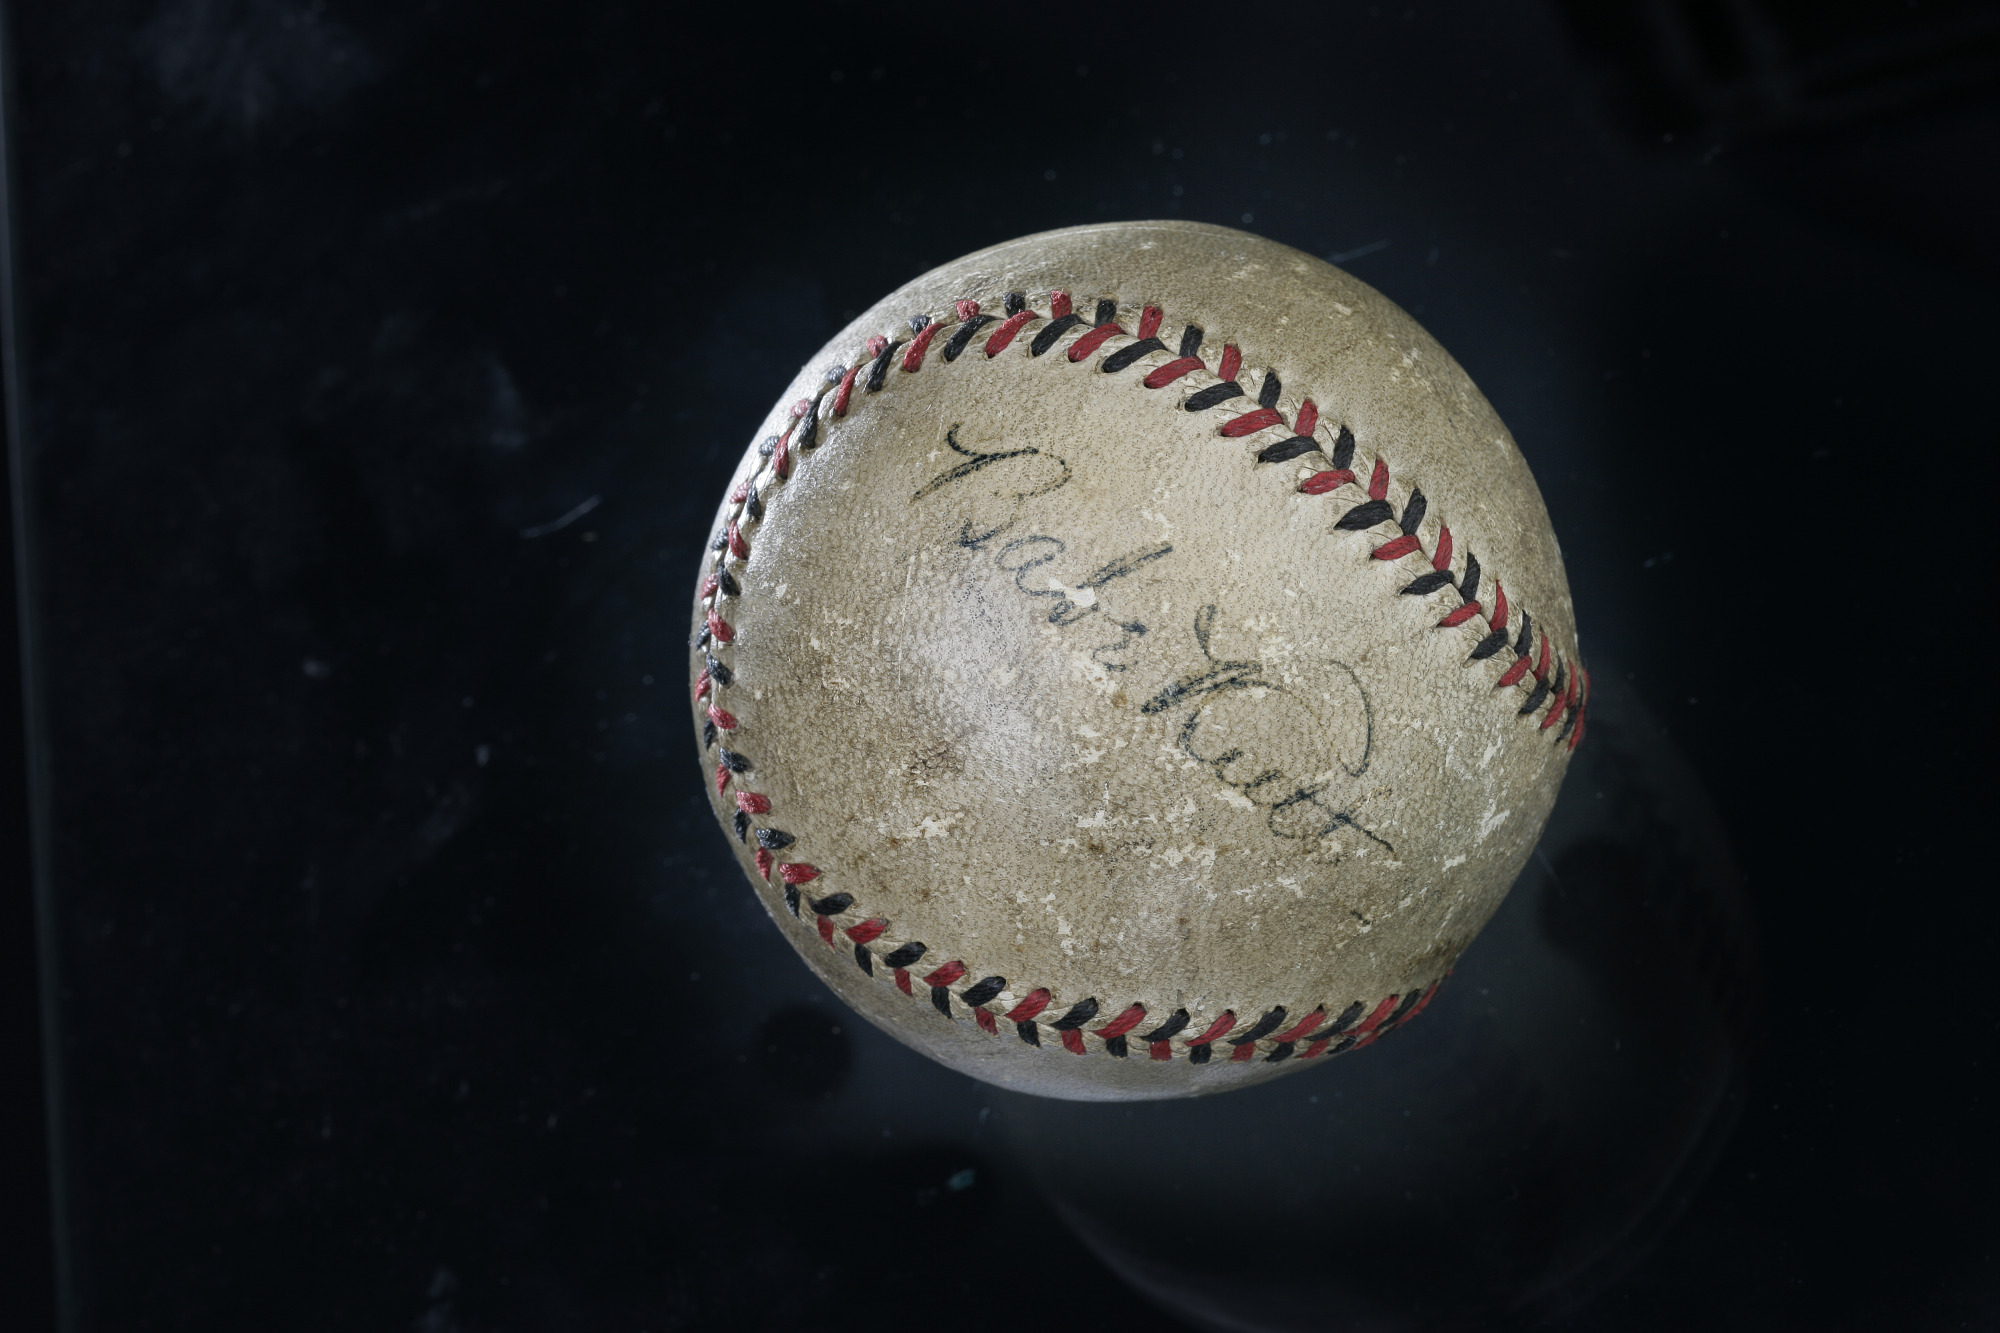 images for Babe Ruth Autographed Baseball